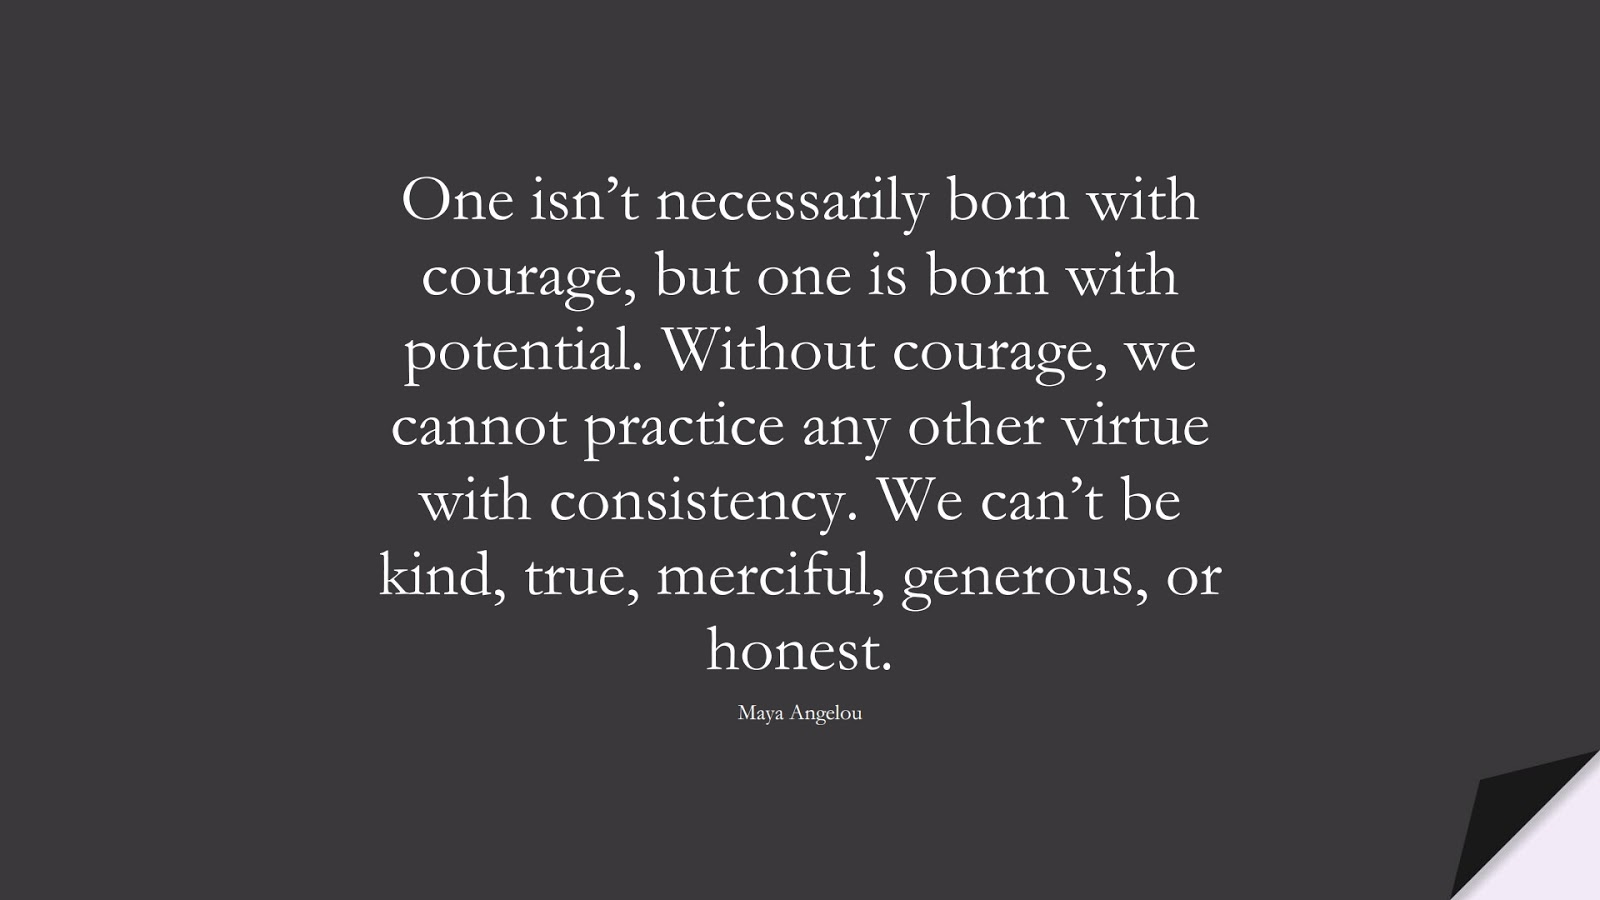 One isn't necessarily born with courage, but one is born with potential. Without courage, we cannot practice any other virtue with consistency. We can't be kind, true, merciful, generous, or honest. (Maya Angelou);  #MayaAngelouQuotes